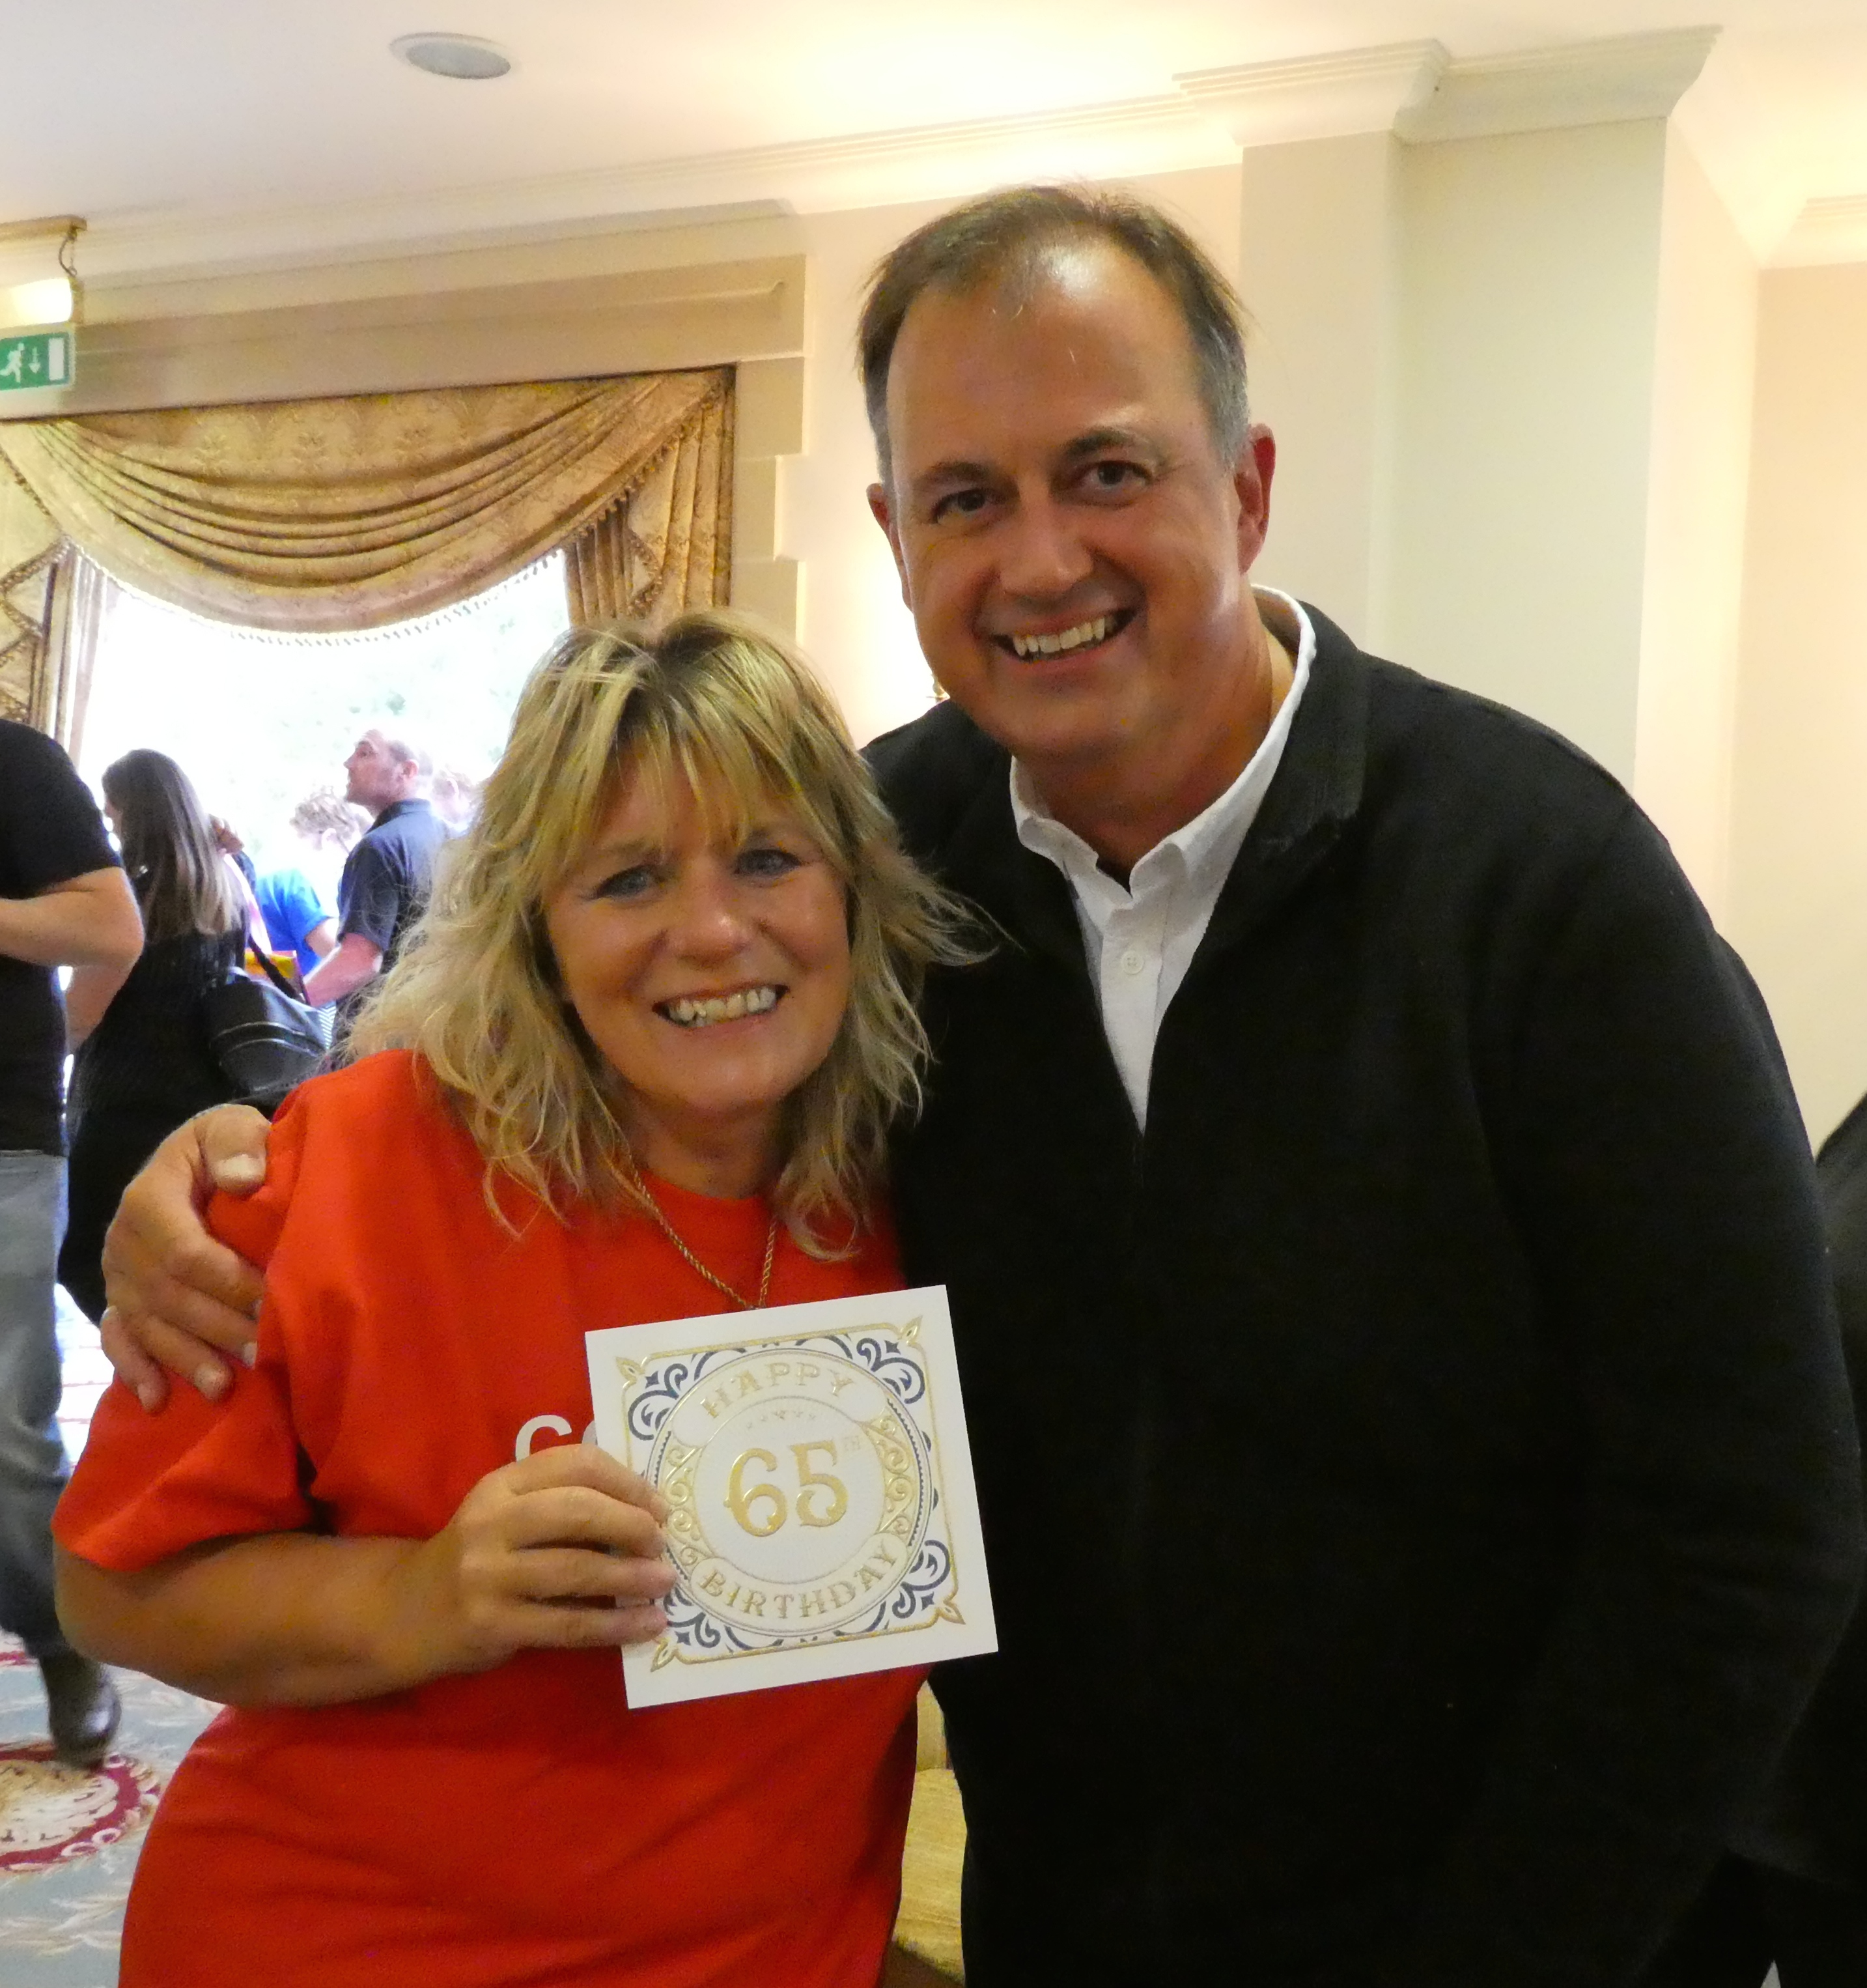 Paul Woodmansterne with Caroline Lawson, valued member of the publisher's sales team receiving one of the special company 65thcards.